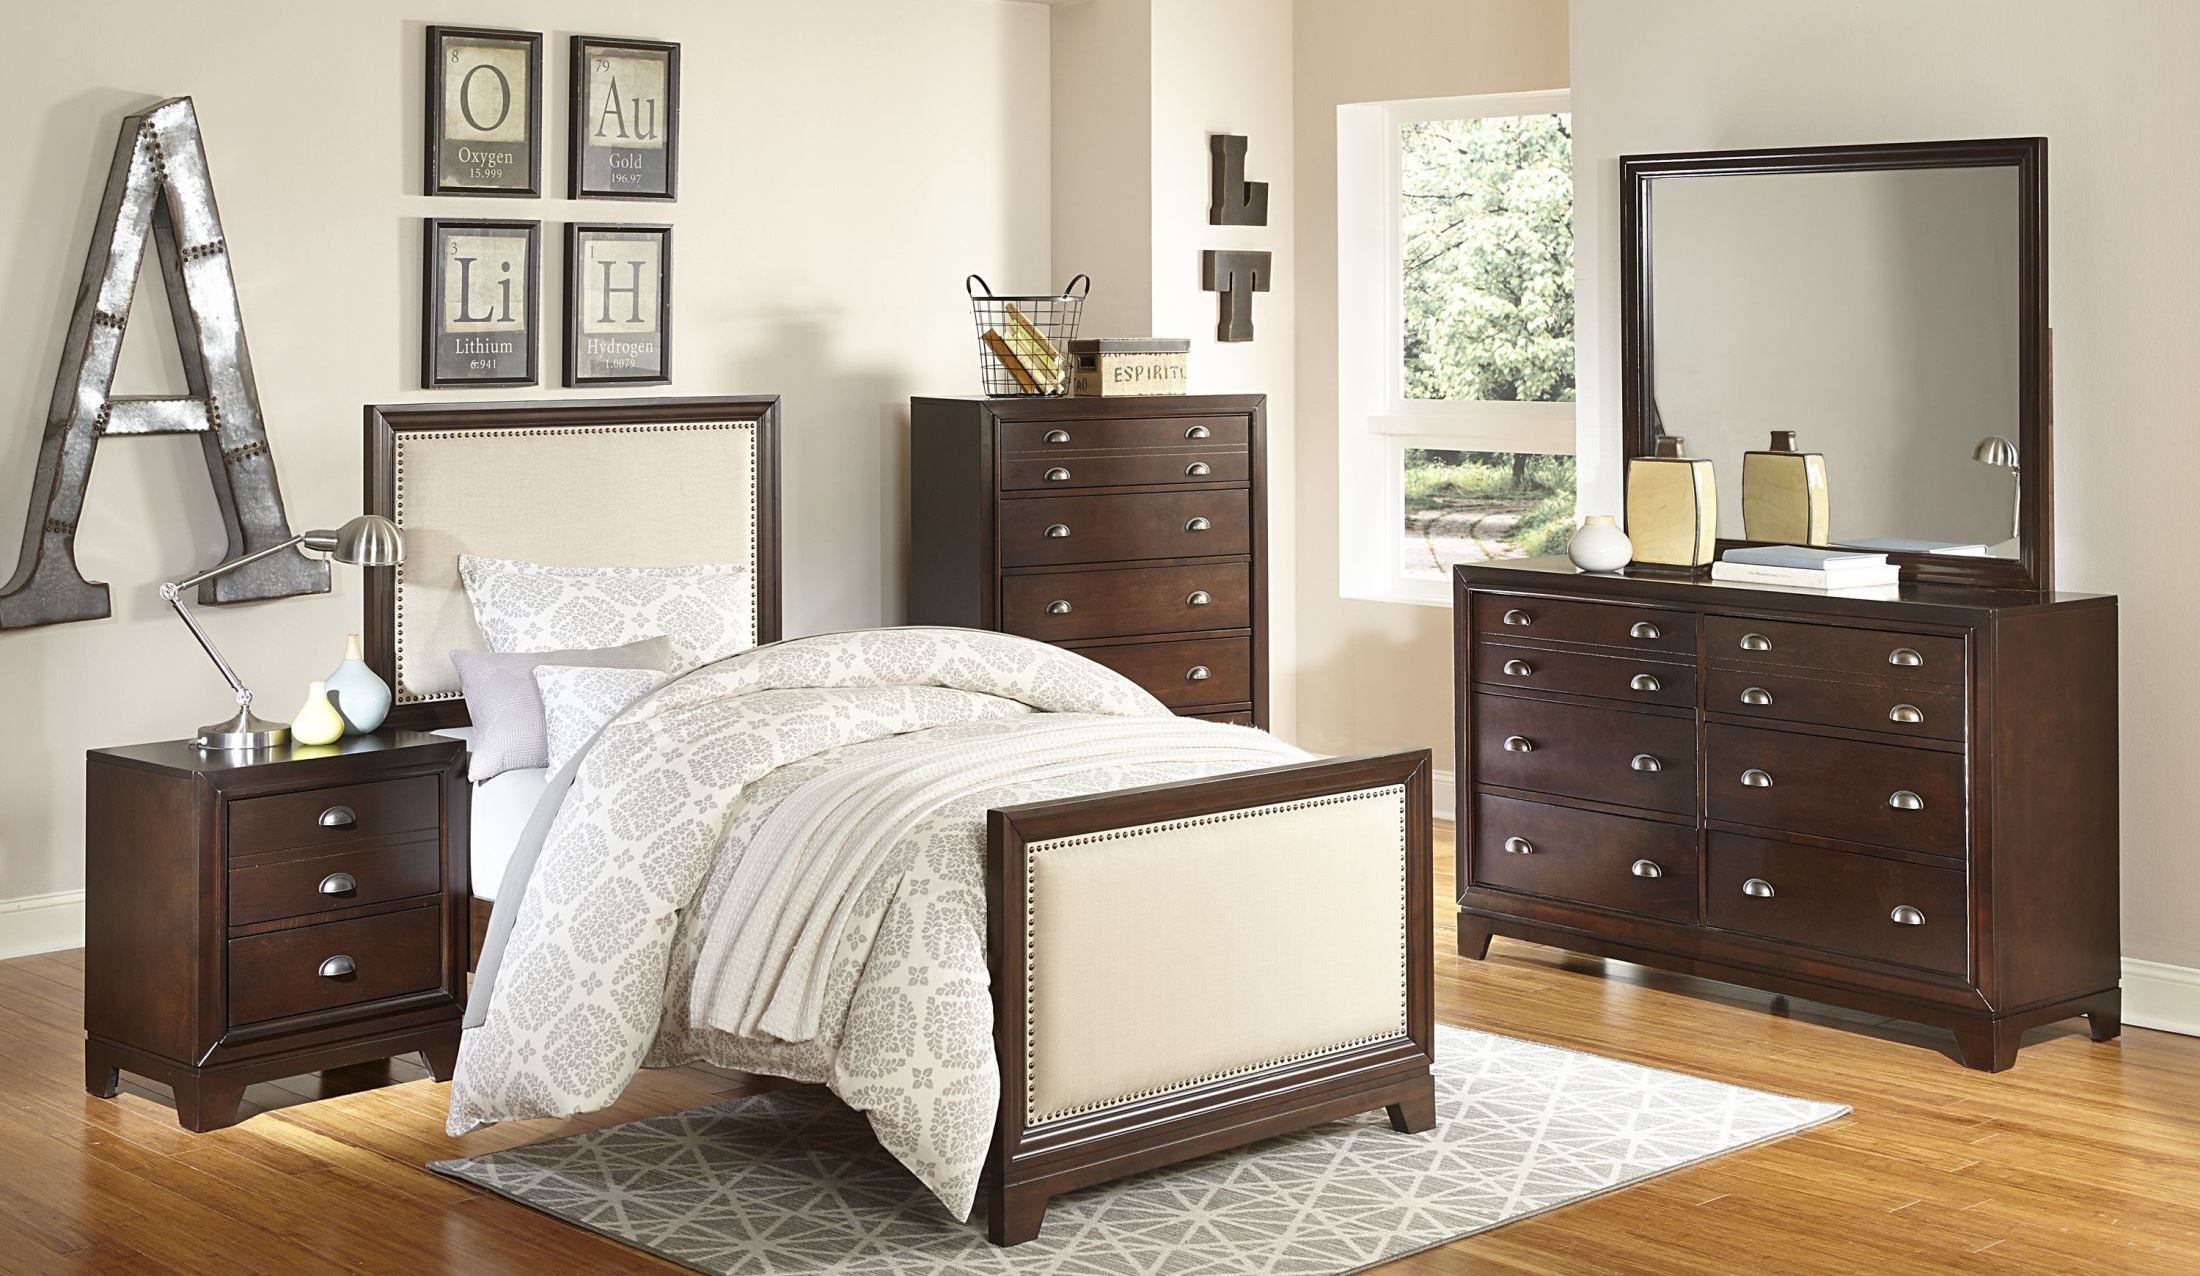 Bernal heights warm cherry youth panel bedroom set from for Youth bedroom furniture